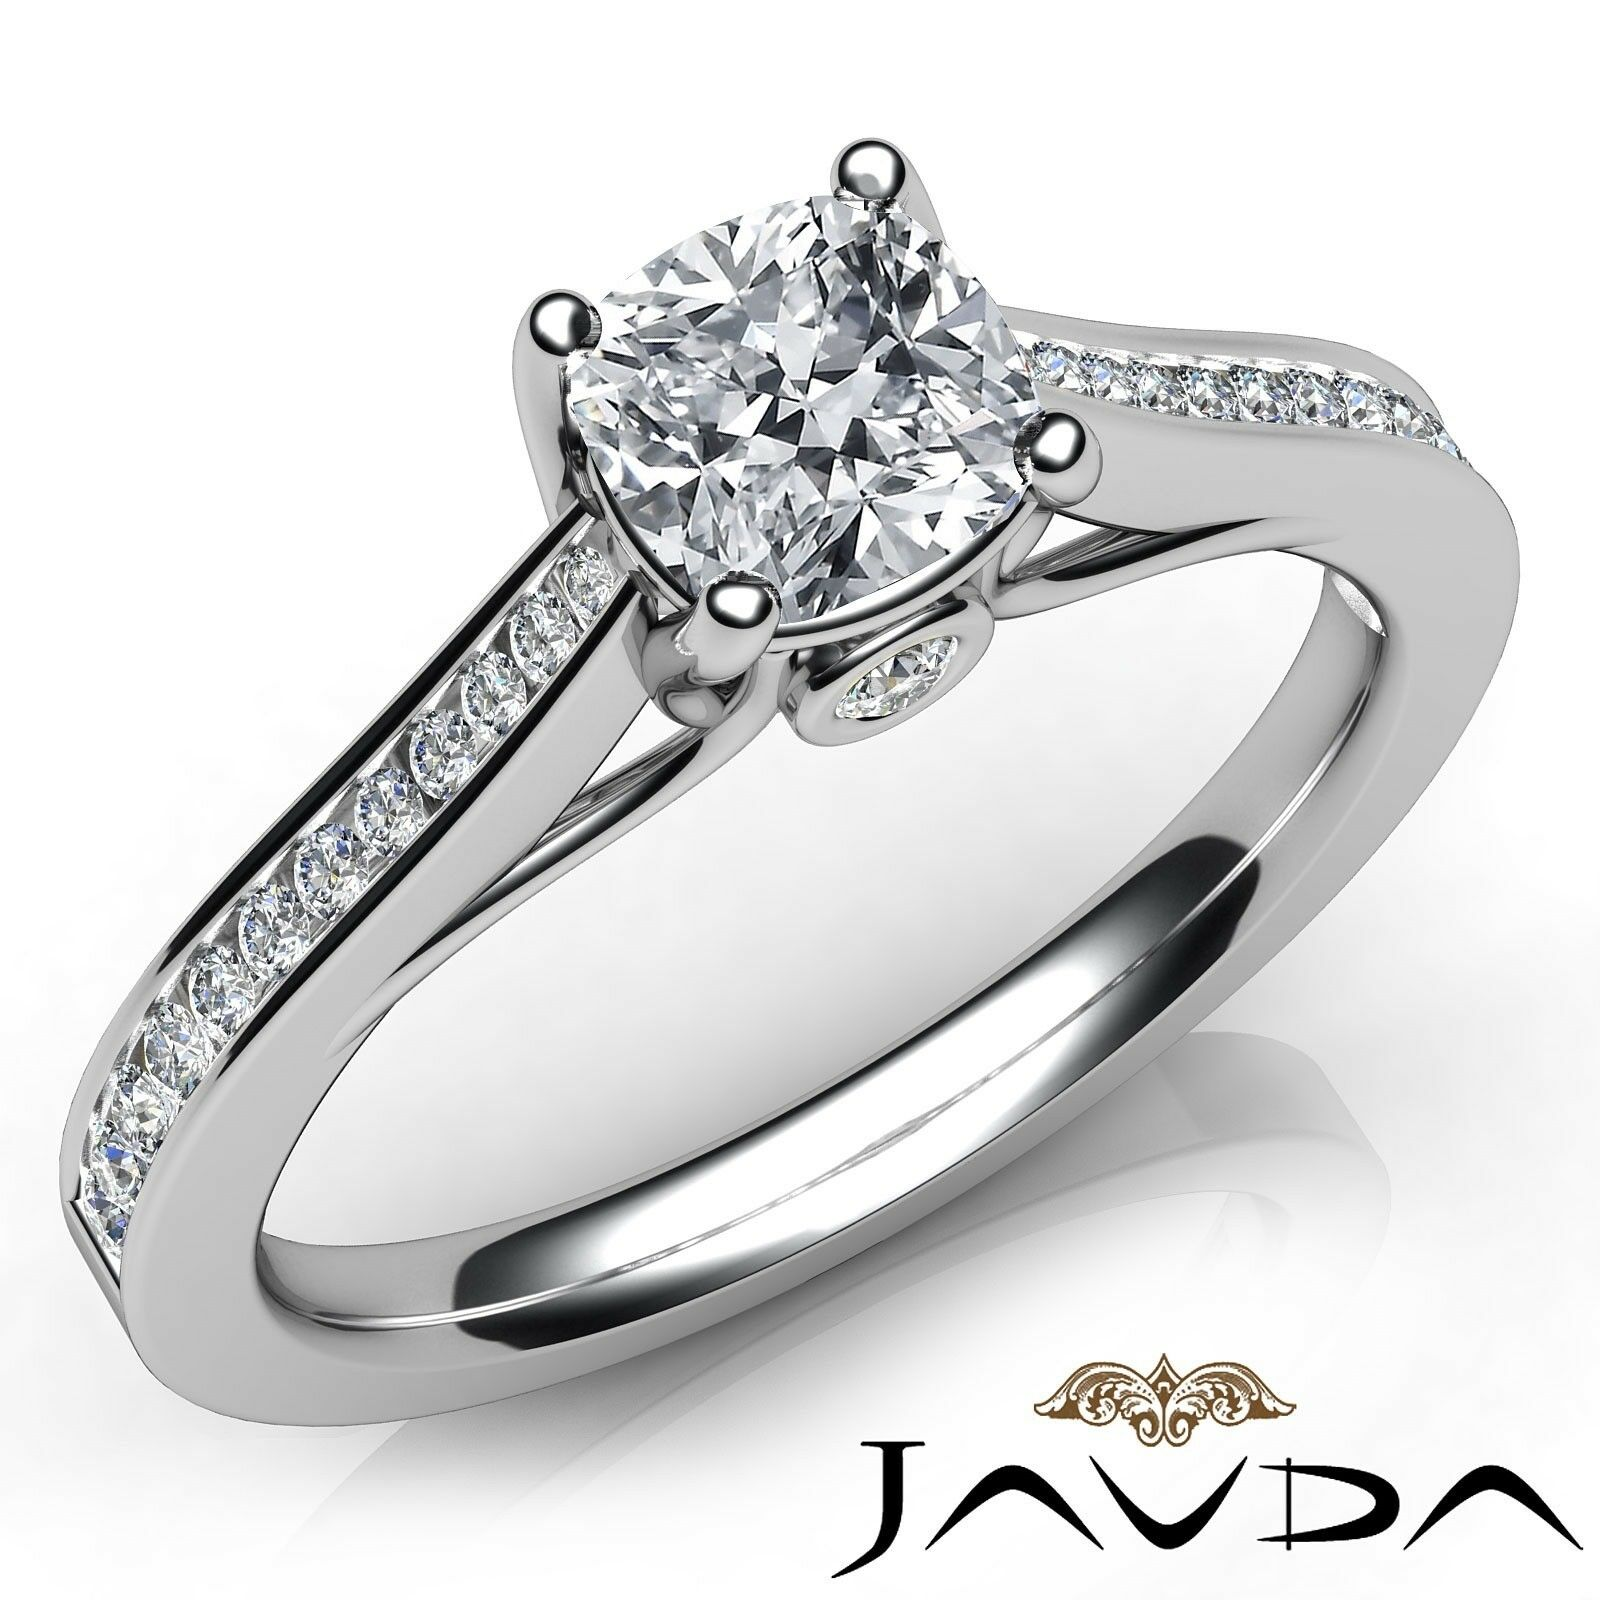 1.31ctw Channel Bezel Prong Cushion Diamond Engagement Ring GIA H-SI1 White Gold